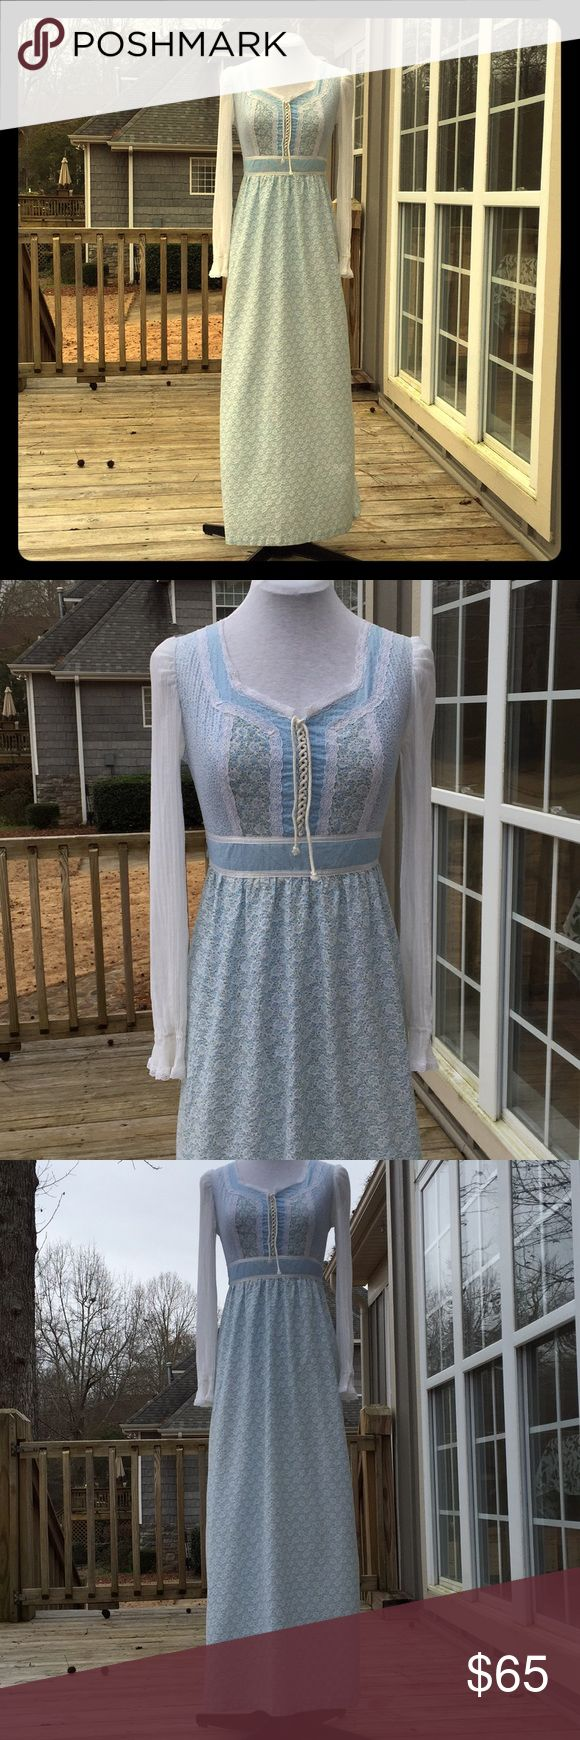 Vintage Blue Prairie Festival Dress Size XS-Small Beautiful 1970s vintage dress. Multi patterned blues and white with lace embellishments and sheer gauze sleeves. Front lace up corset style bodice with sweetheart neckline. Back zipper, ties in the back. Size extra small to small. Similar to peasant dresses by Gunne Sax, Jessica McClintock. Vicky Vaughn Dresses Maxi